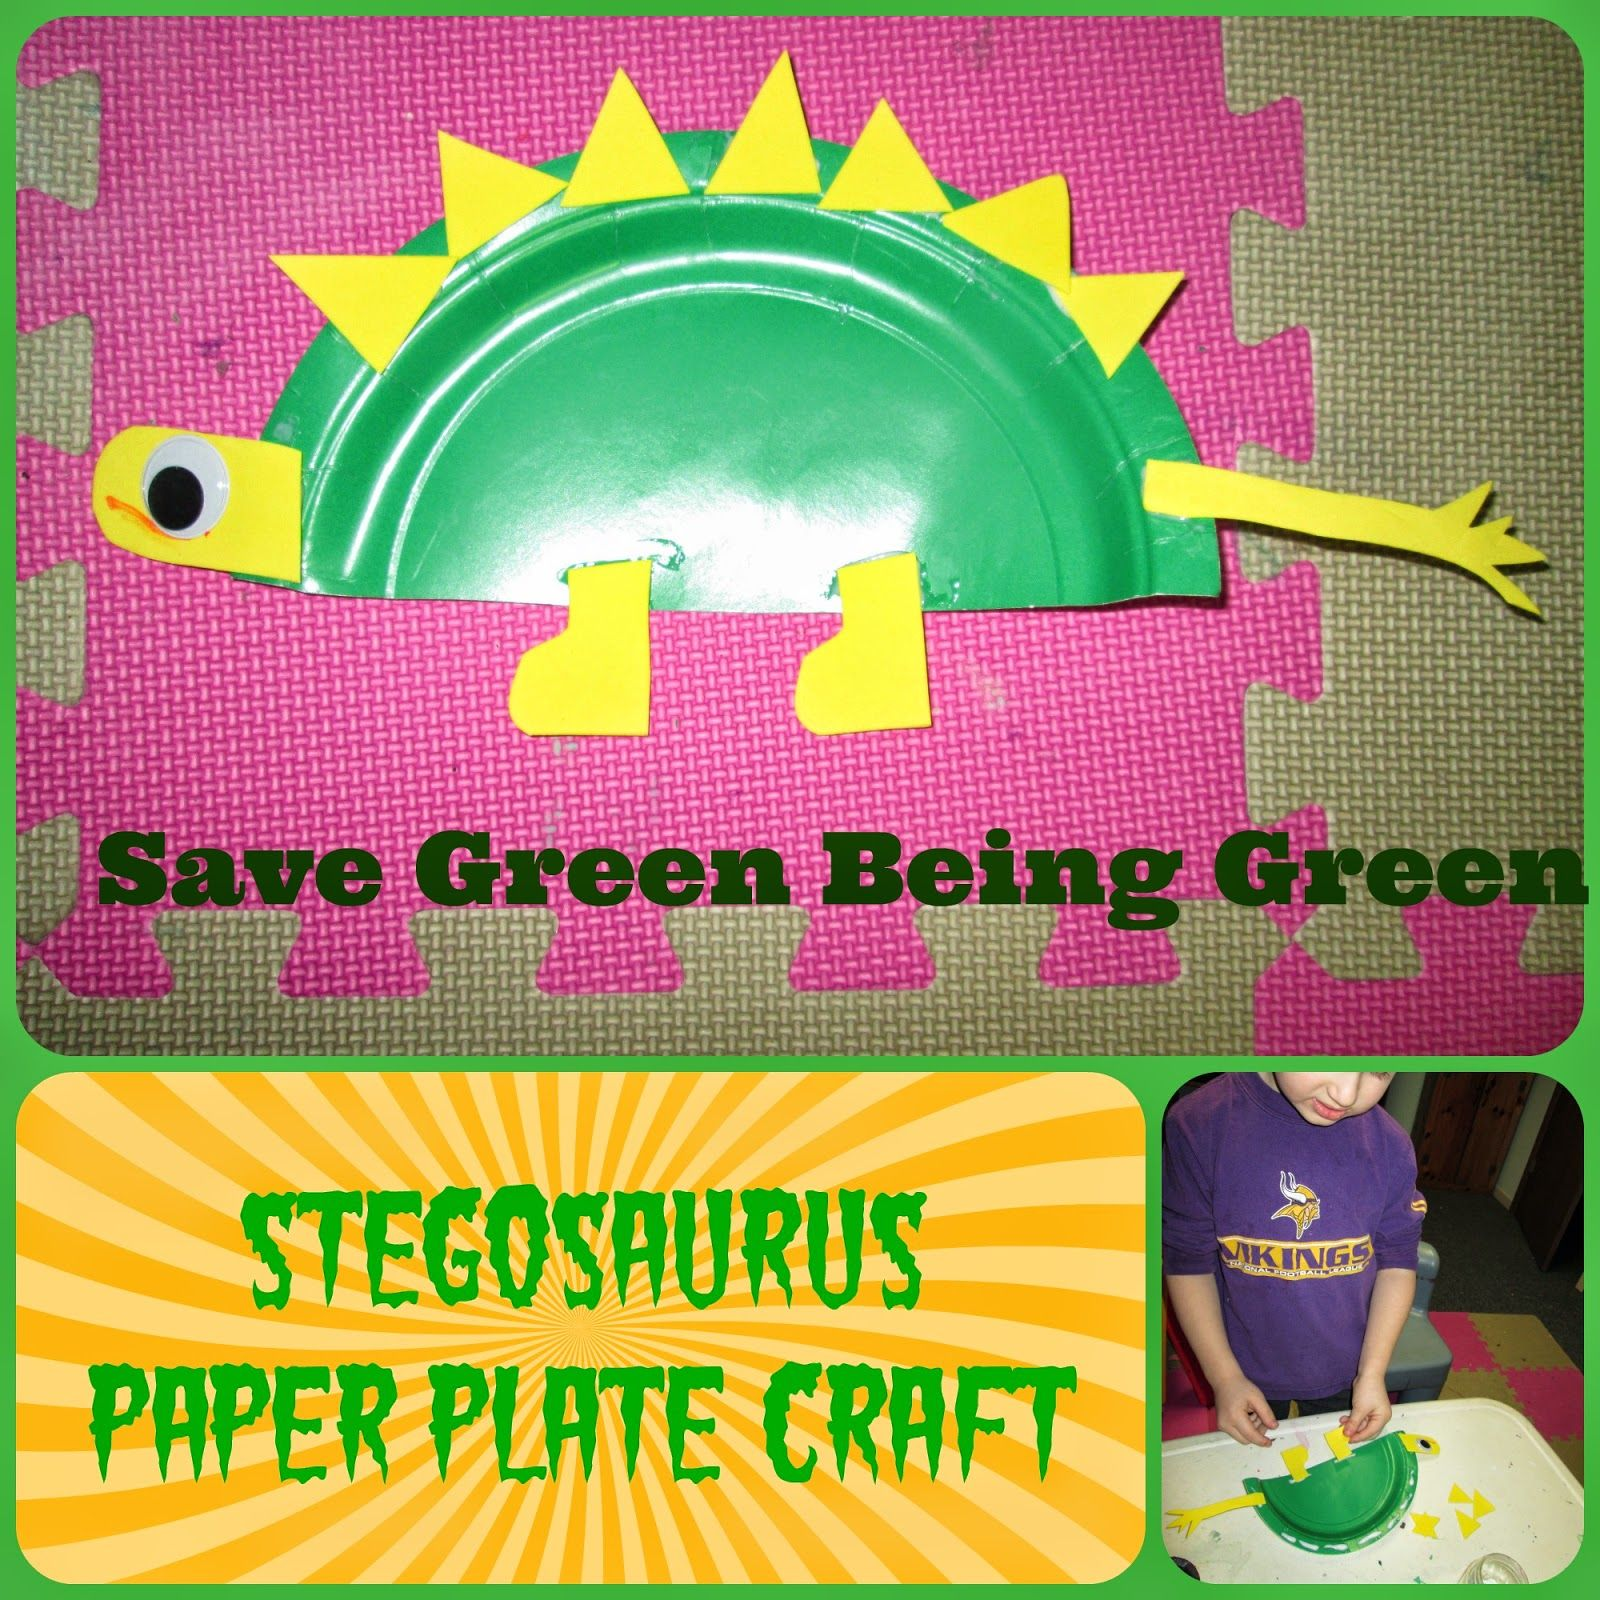 Save Green Being Green Stegosaurus Paper Plate Craft | My Stuff | Pinterest | Paper plate crafts and Activities  sc 1 st  Pinterest : stegosaurus paper plate craft - pezcame.com